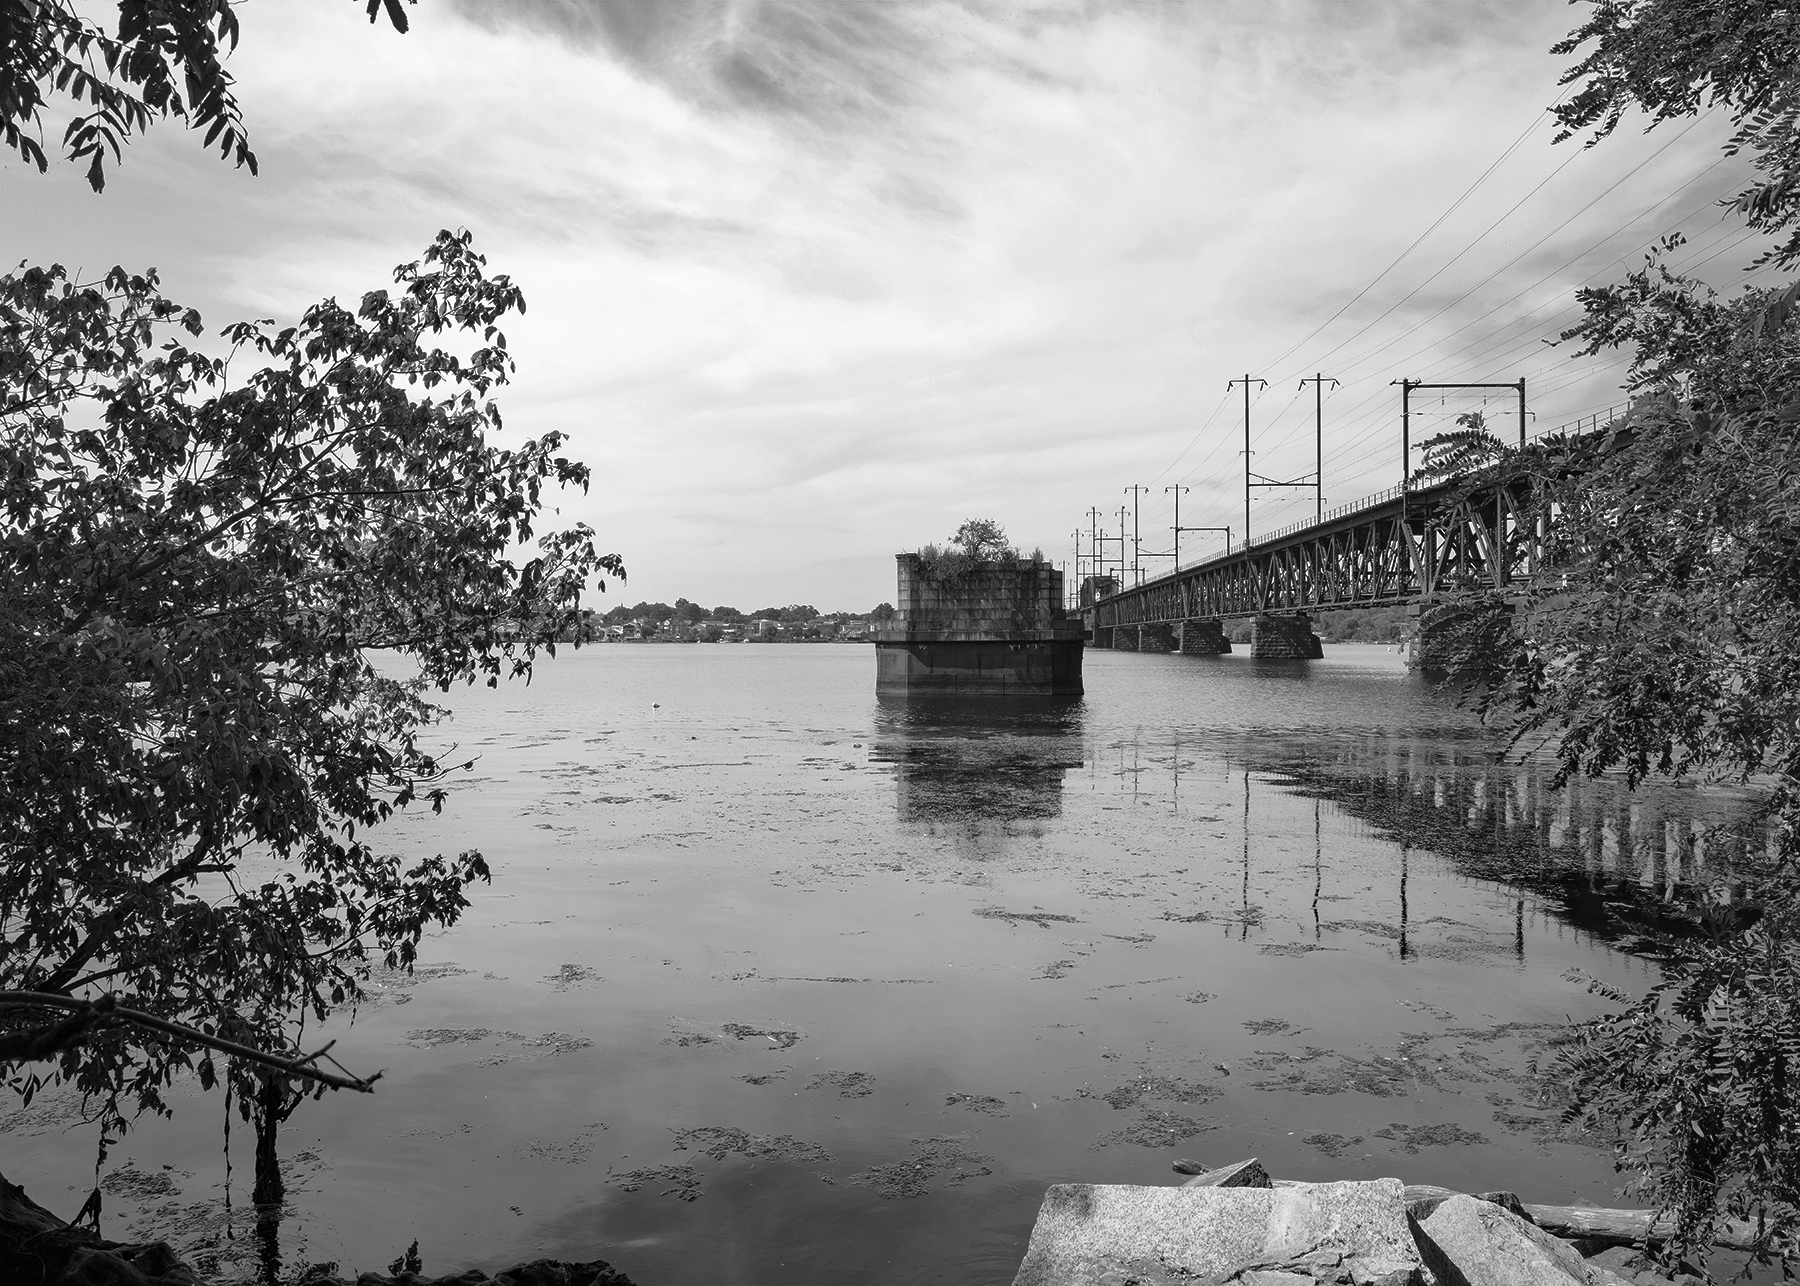 Susquehanna River Bridge, Perryville, Maryland. Images like this provide the visual clues of the evolution of the PRR network; the surviving piers of the 1866 Philadelphia, Wilmington & Baltimore Railroad bridge spanning the Susquehanna stands adjacent to its replacement completed by the Pennsylvania Railroad in 1906. Learn how I draw inspiration from historical imagery to create contemporary images that explore the surviving infrastructure of the PRR while considering its impact on the surrounding landscape.